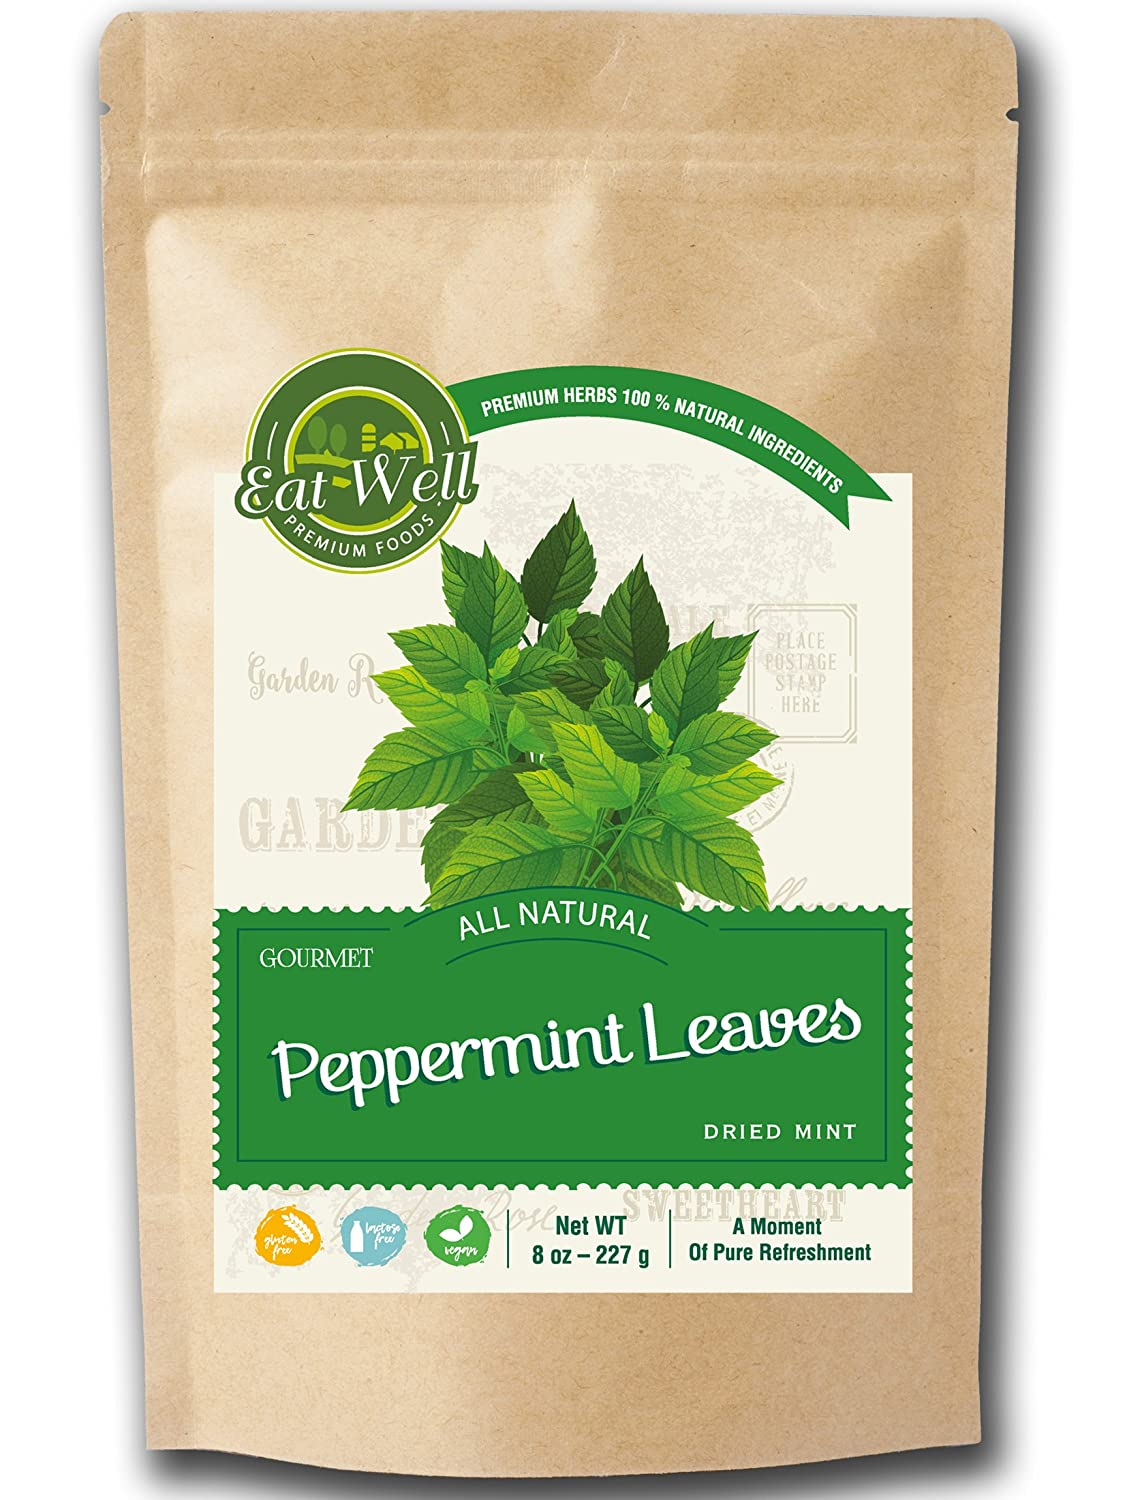 Eat Max 71% OFF Well Premium Foods - Crushed Mint Reseable Leaves oz Bag 8 Soldering